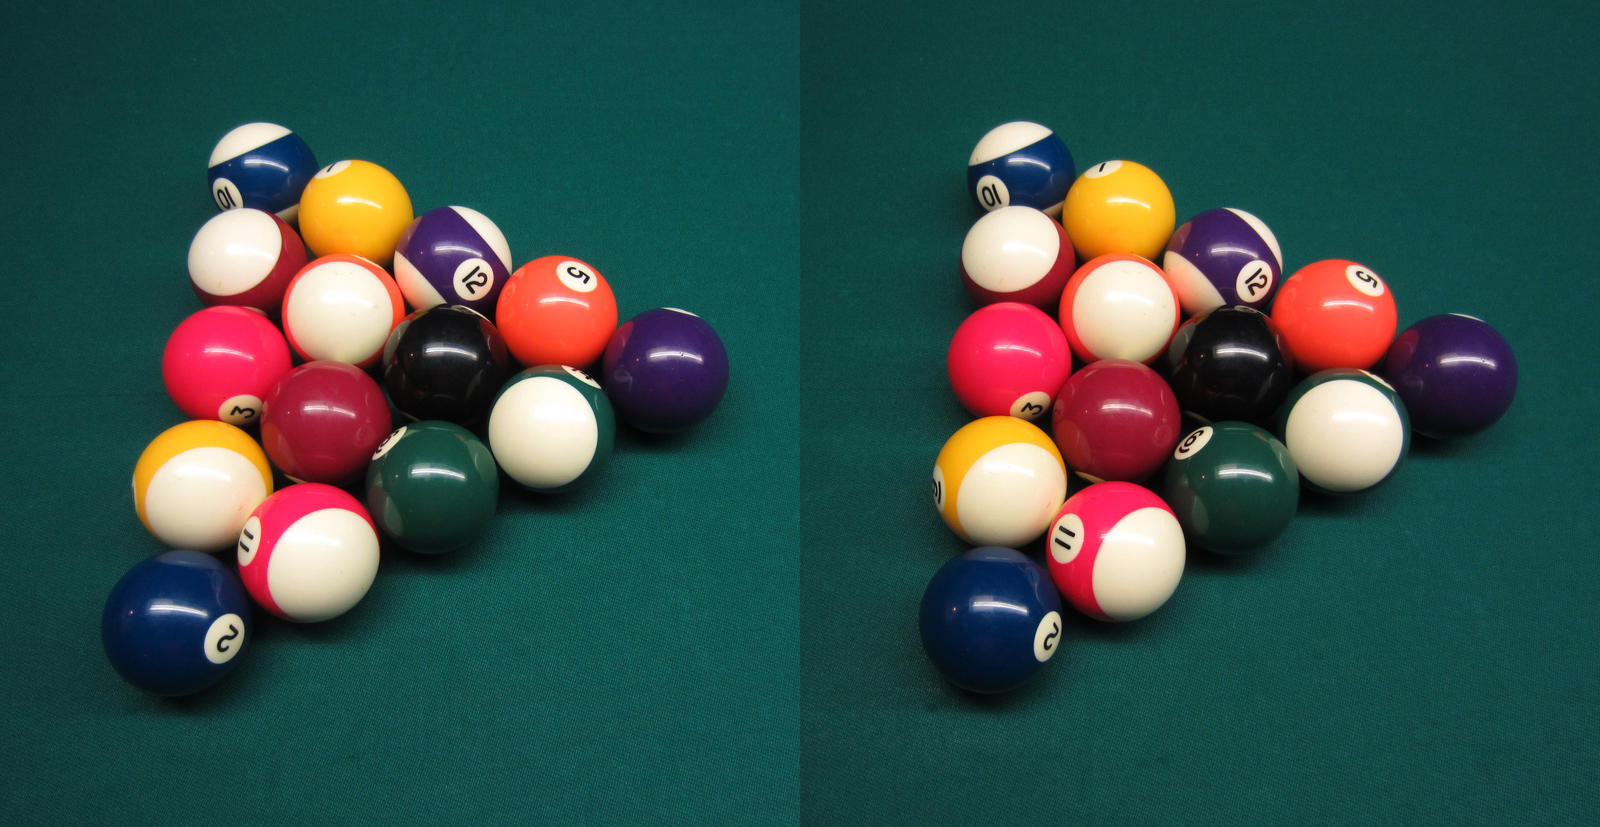 Stereograph - Billiards by alanbecker